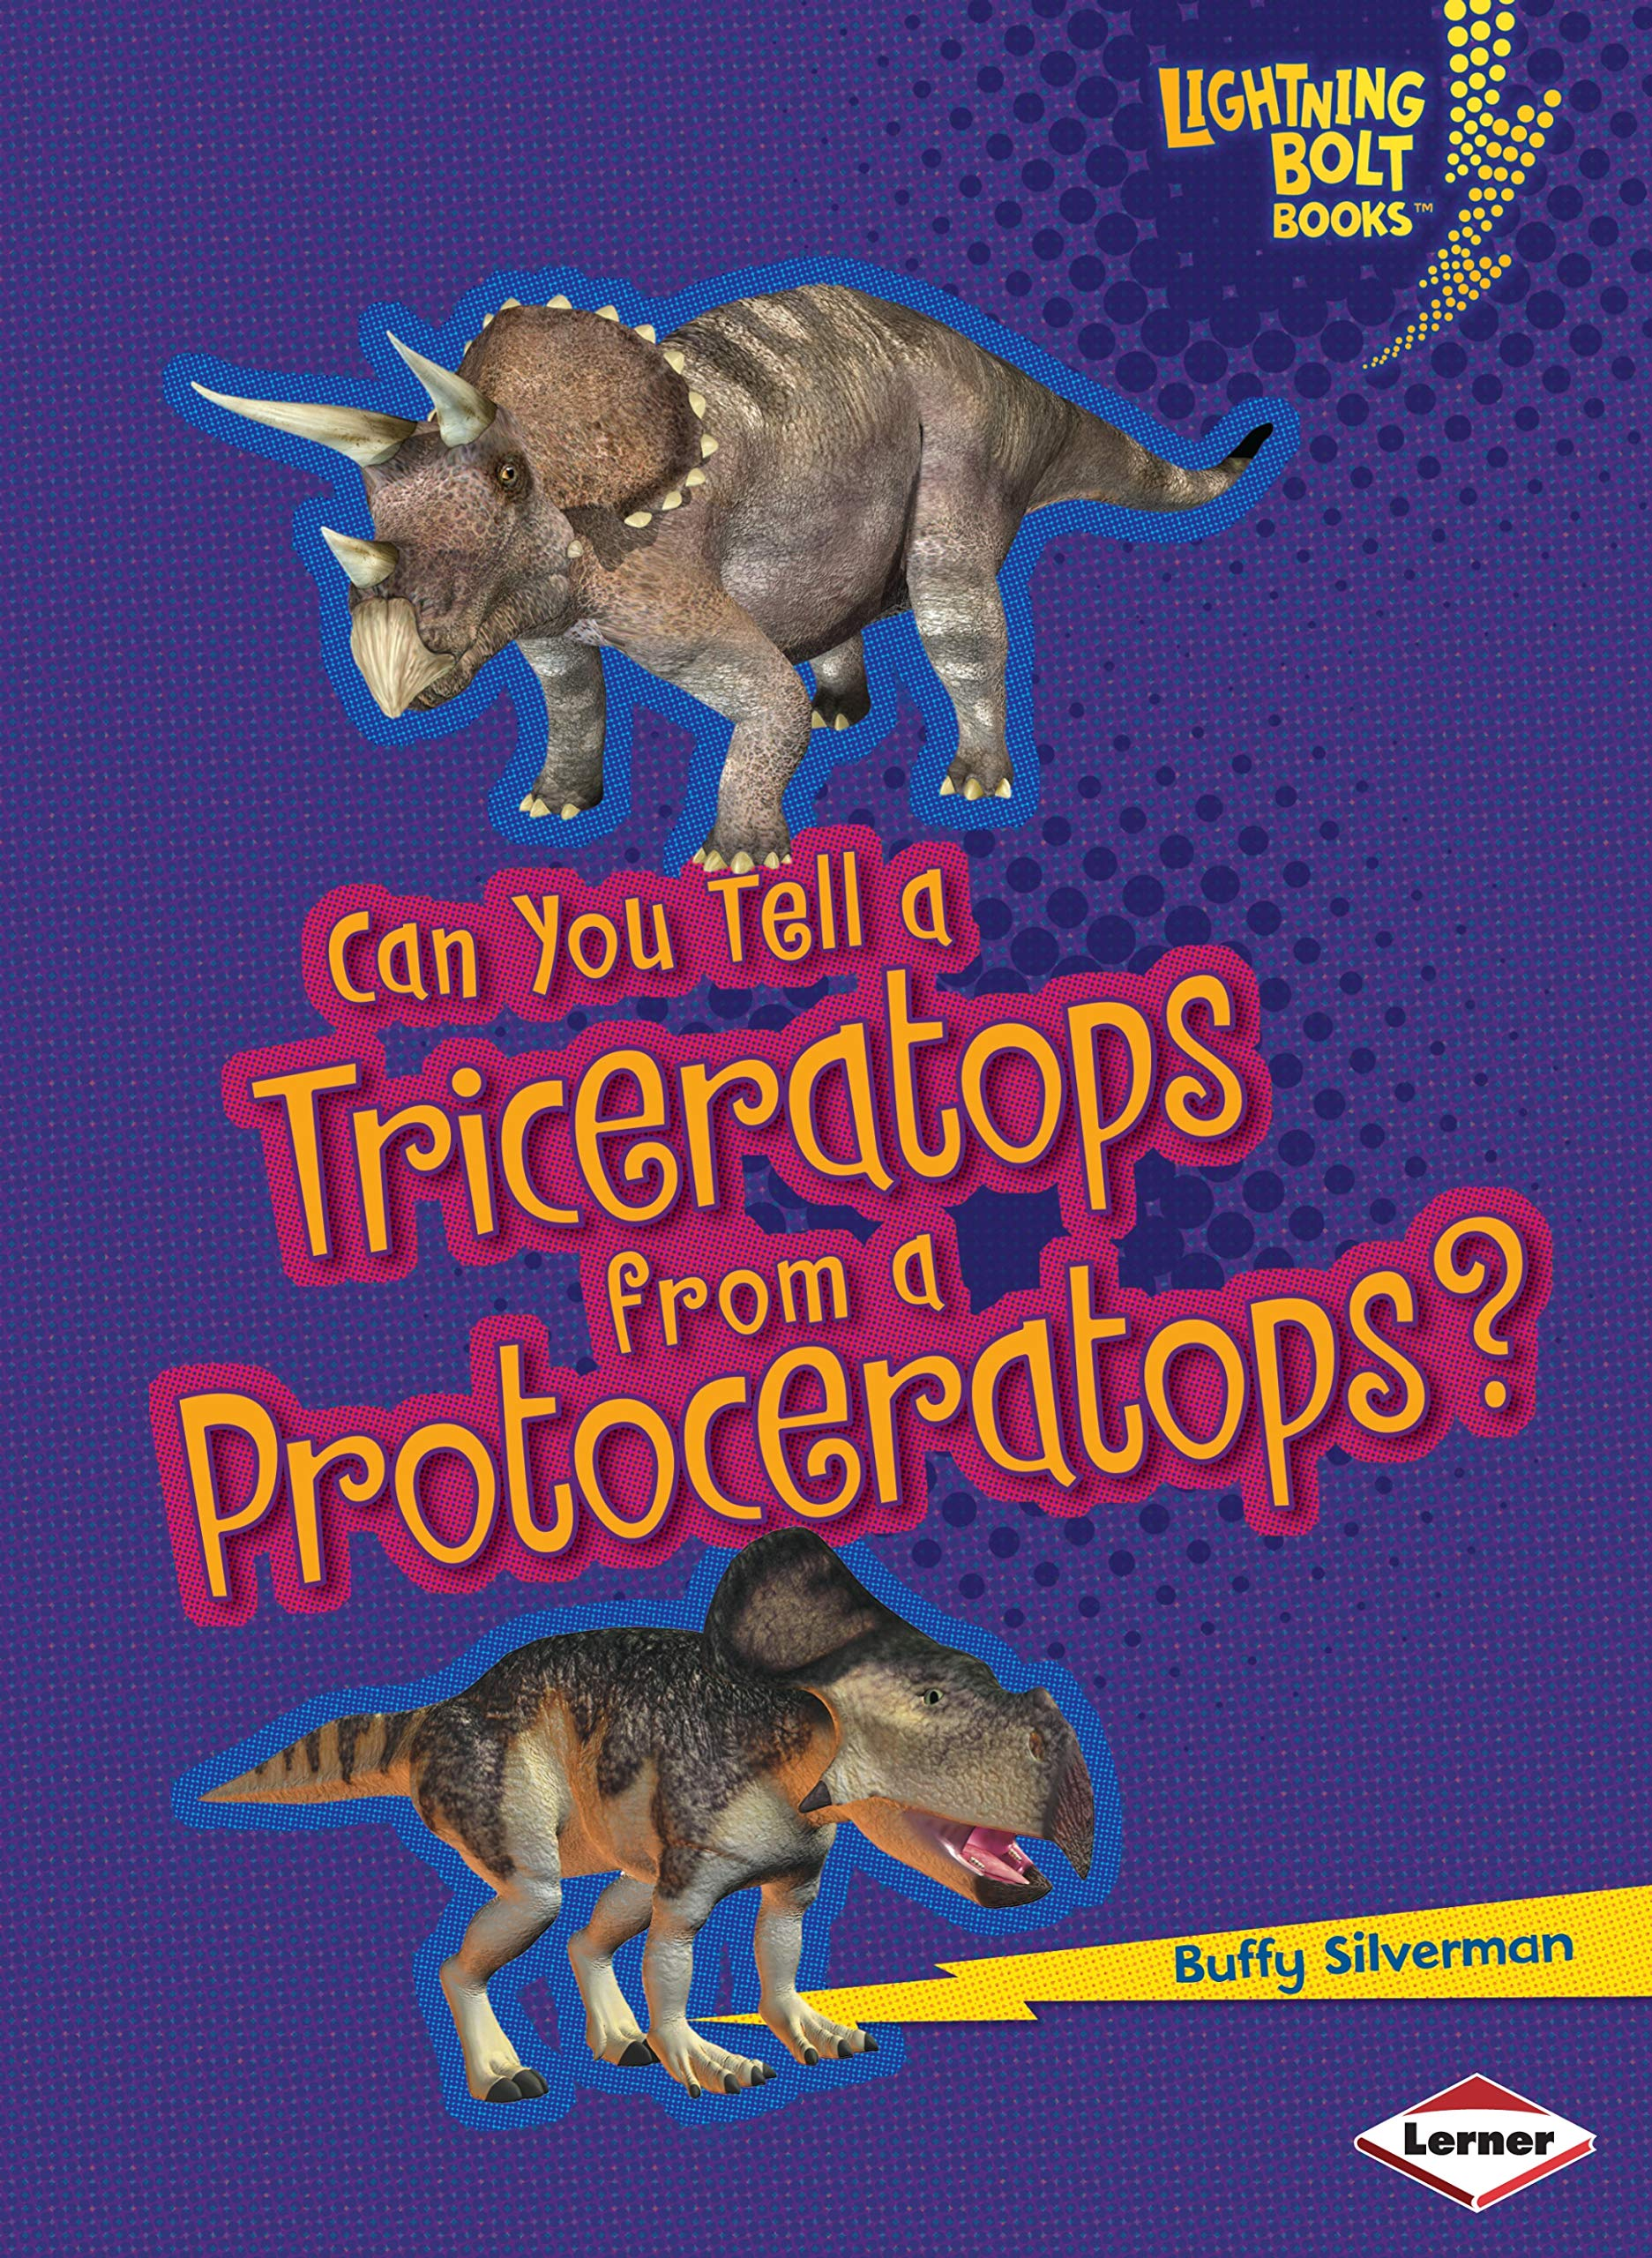 Can You Tell a Triceratops from a Protoceratops? (Lightning Bolt Books - Dinosaur Look-Alikes) pdf